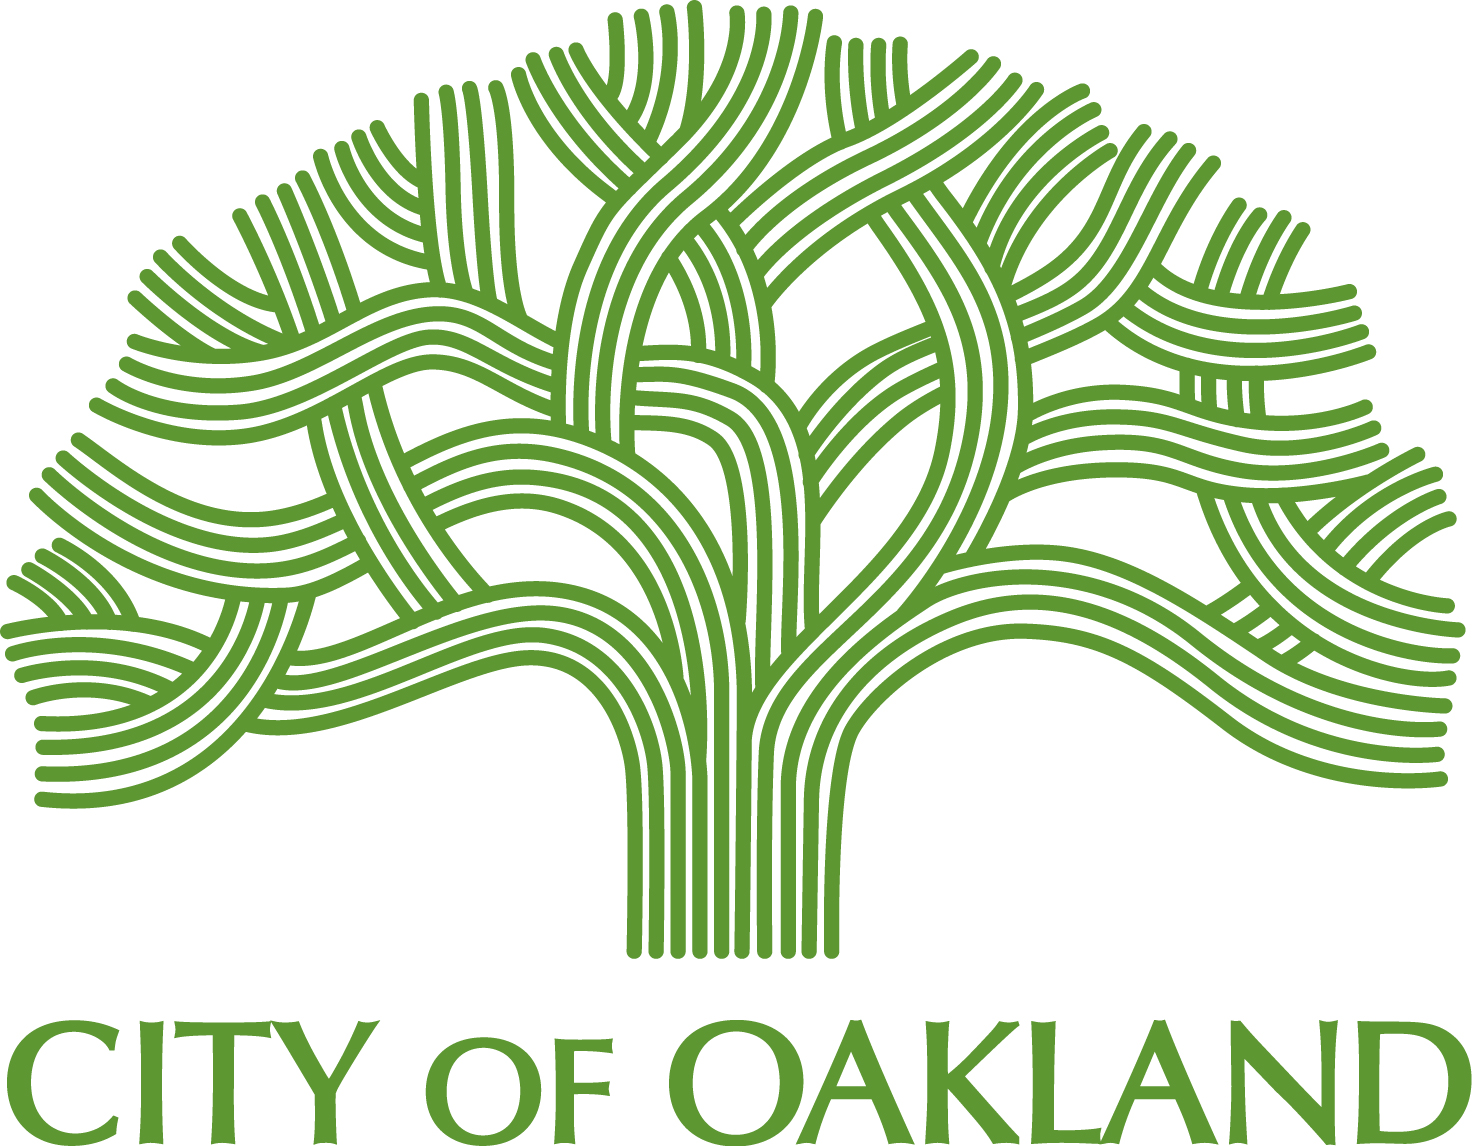 City of Oakland logo for the State of the City 2013 Report